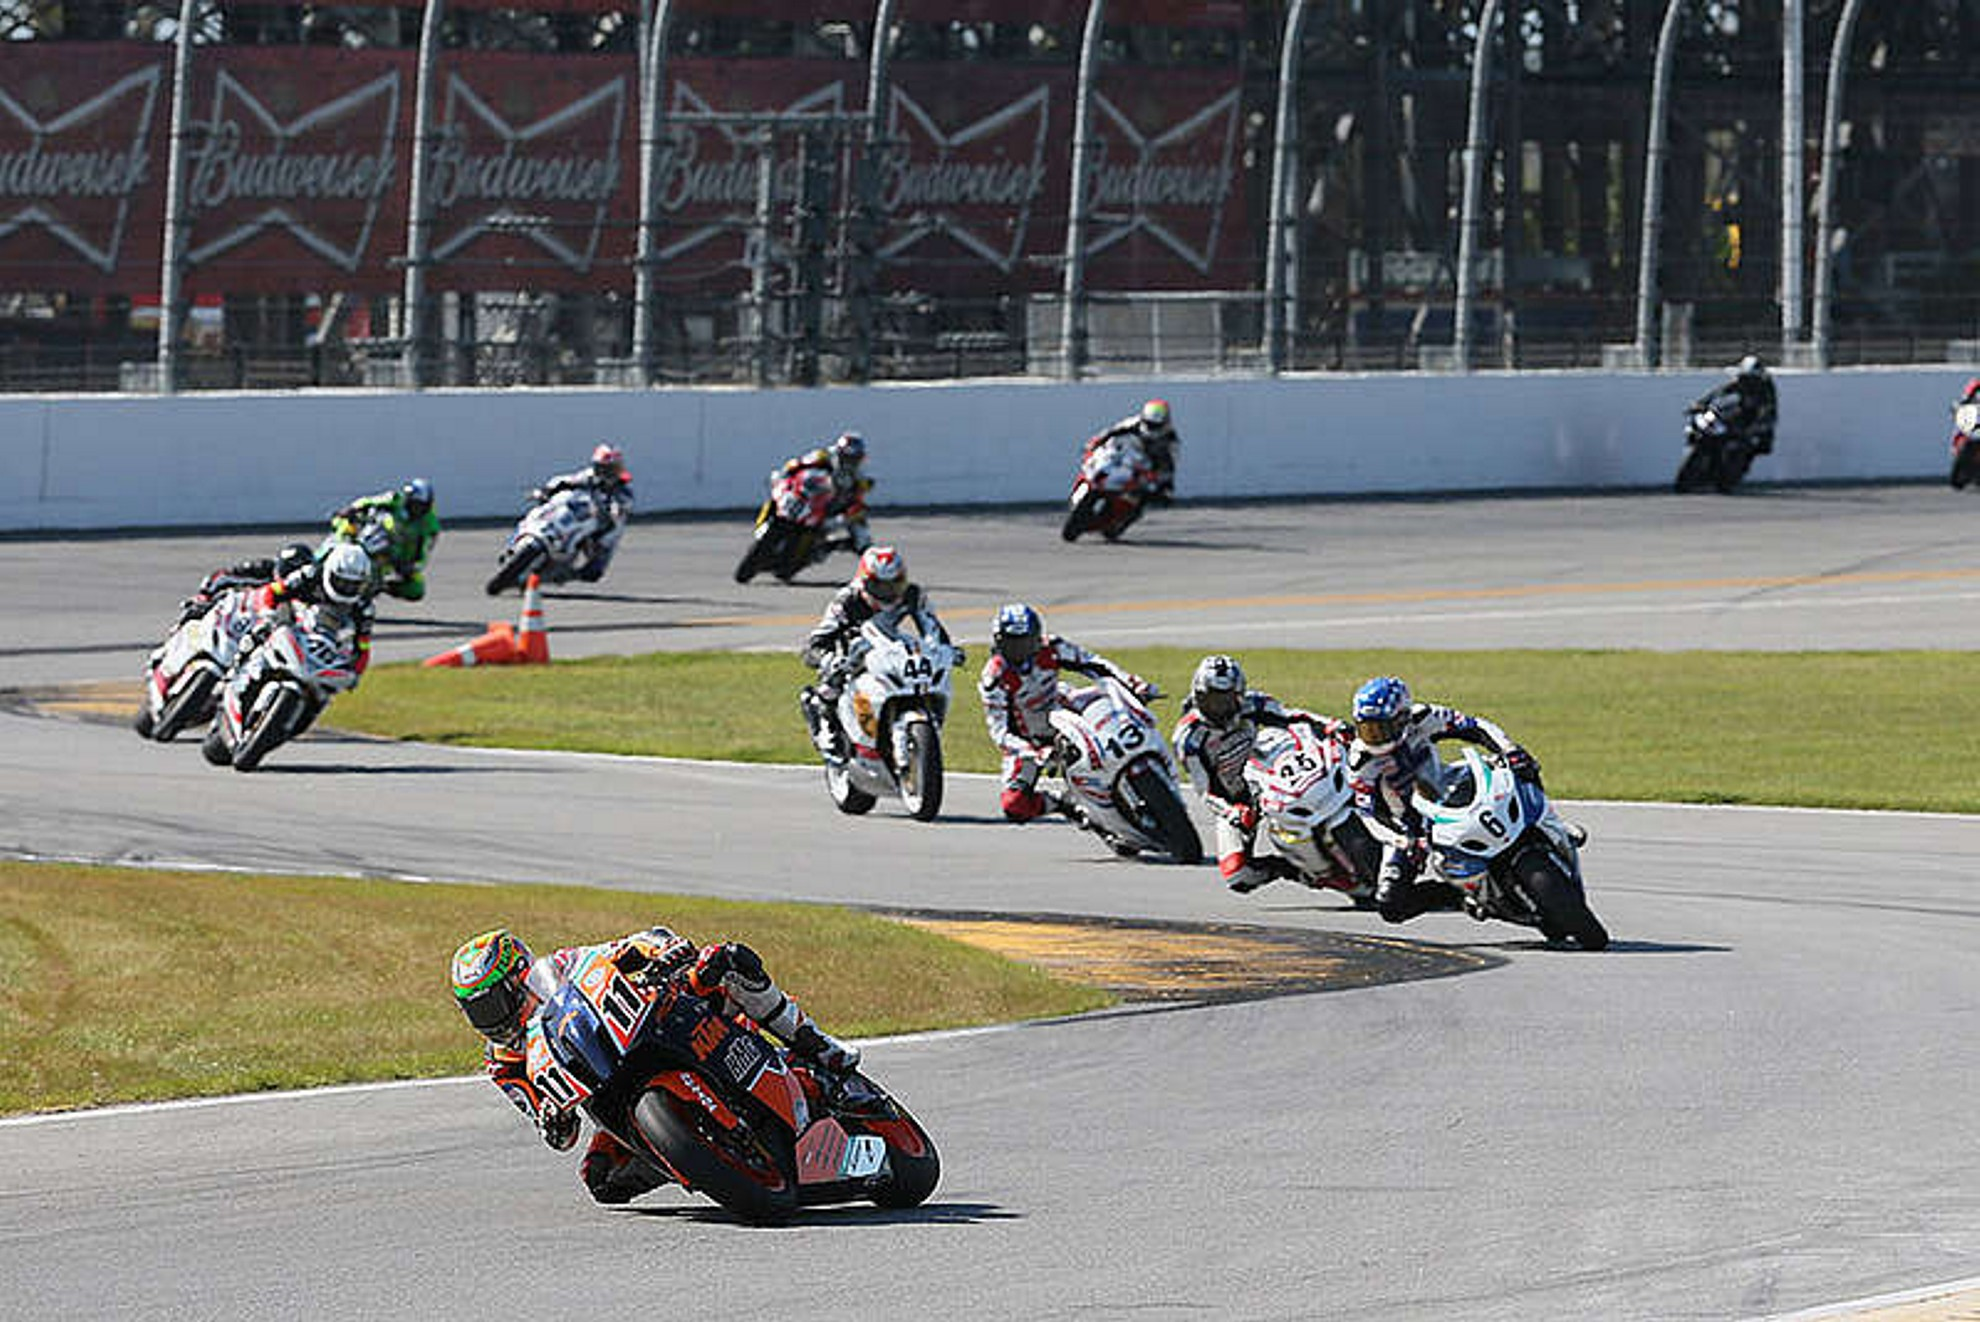 Daytona-2014-Superbike-Racing